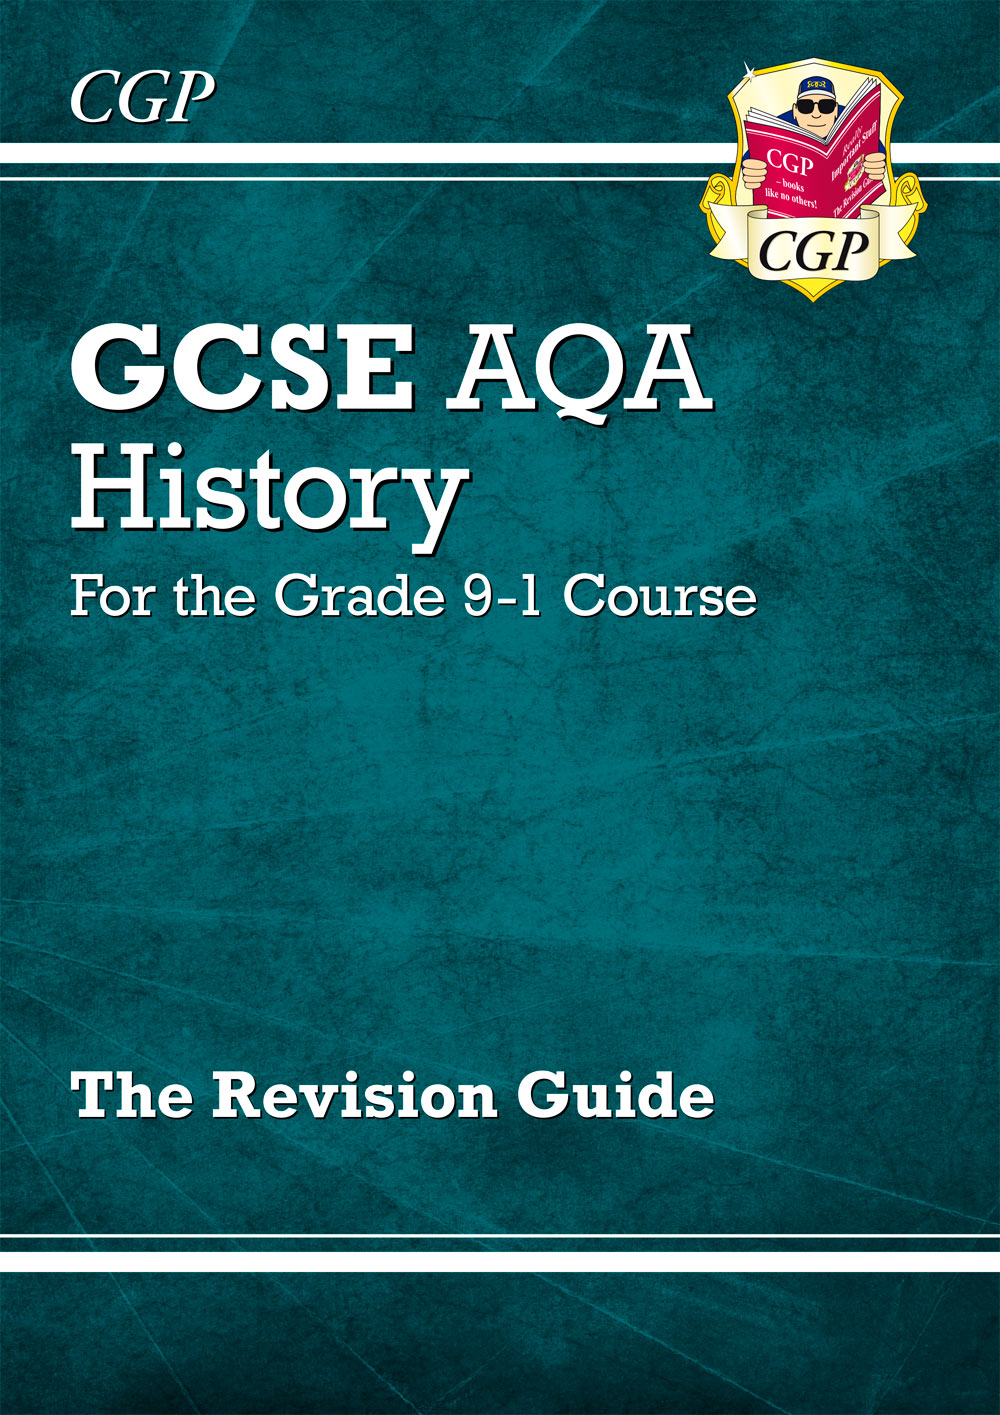 HAR41 - GCSE History AQA Revision Guide - for the Grade 9-1 Course